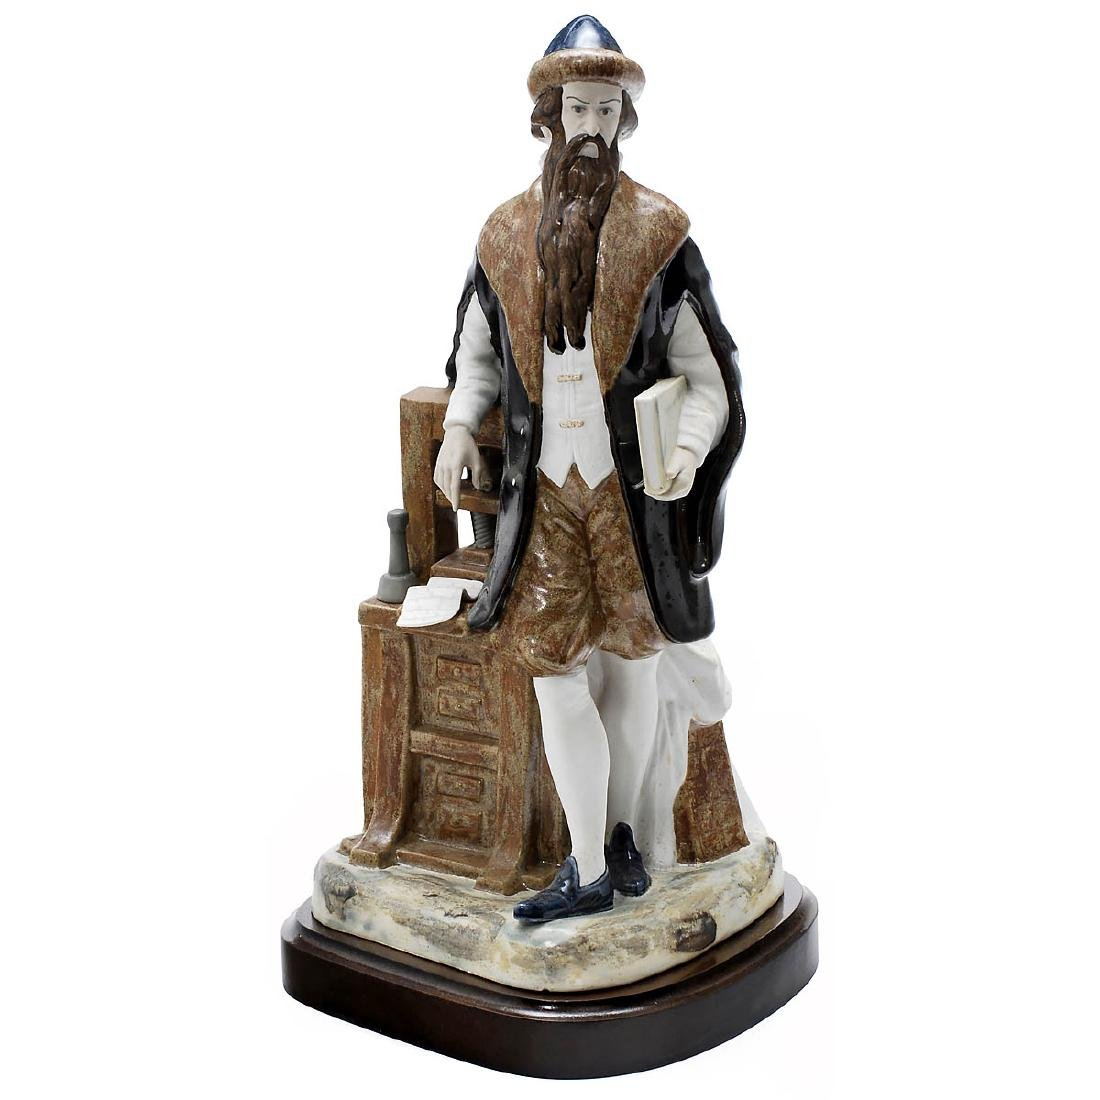 Porcelain Sculpture of the Inventor of Printing